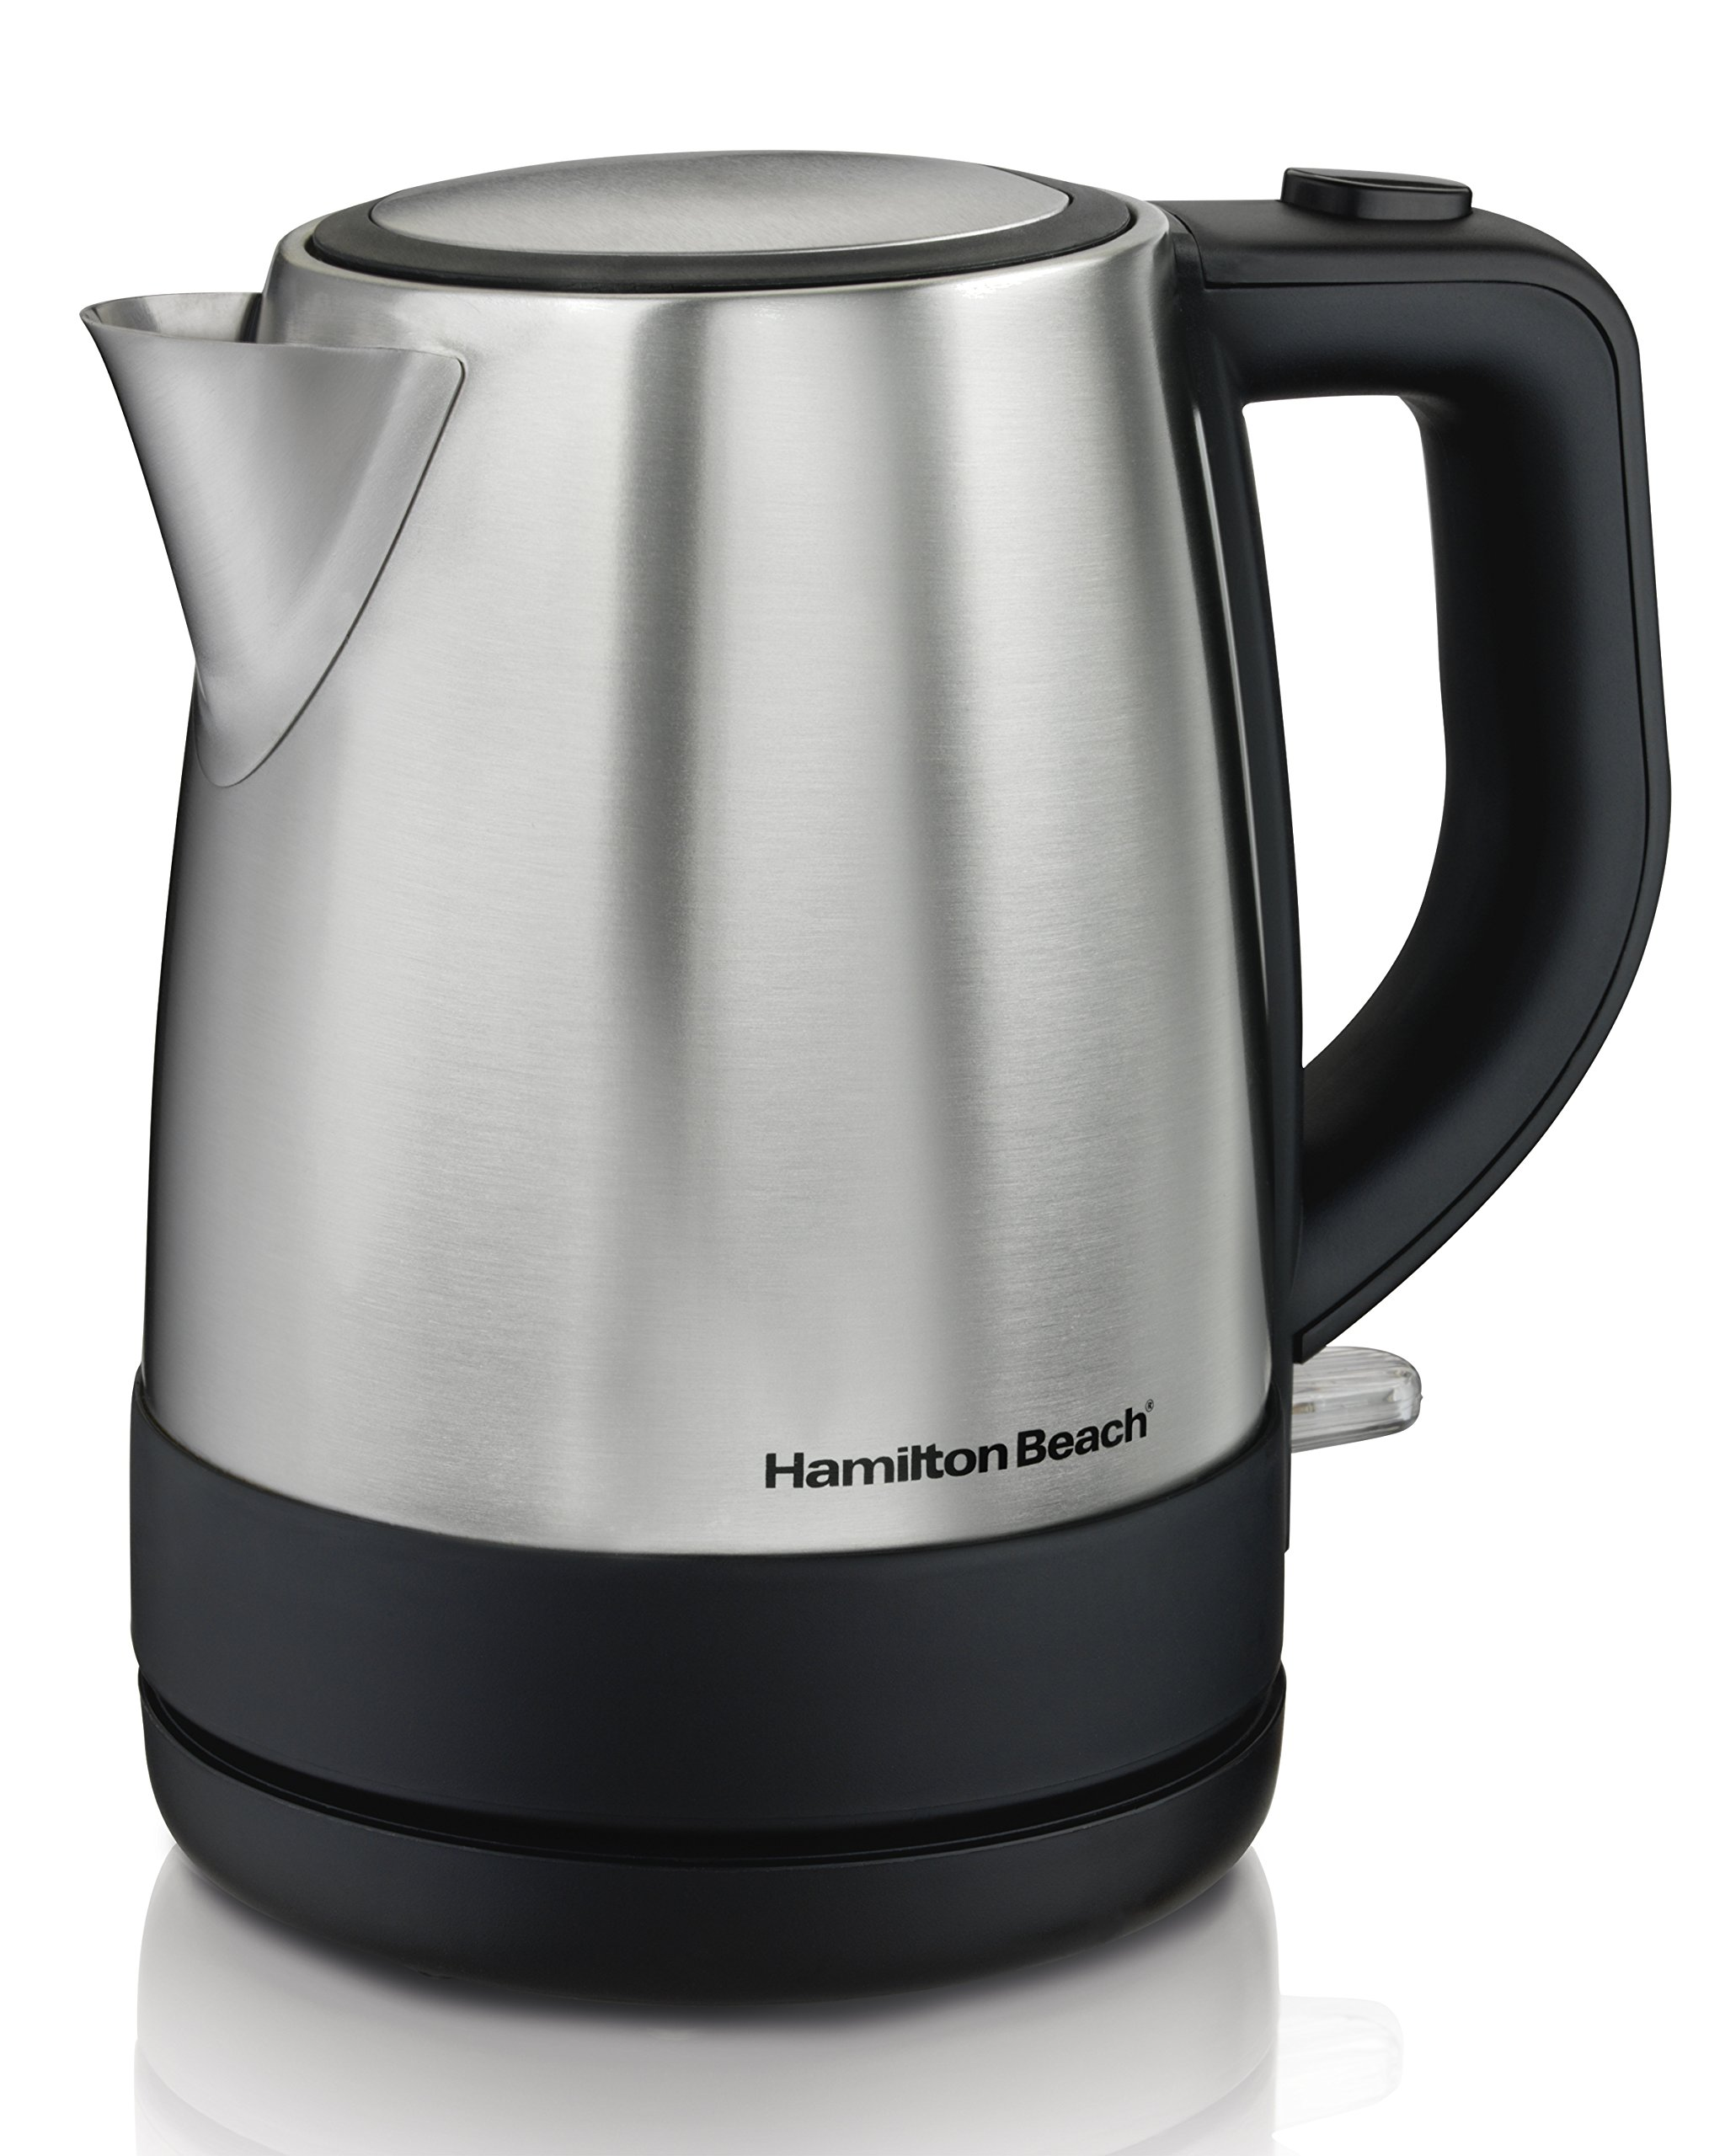 Hamilton Beach (40998) Electric Kettle, For Tea & Coffee, 1.0 Liter, Stainless Steel